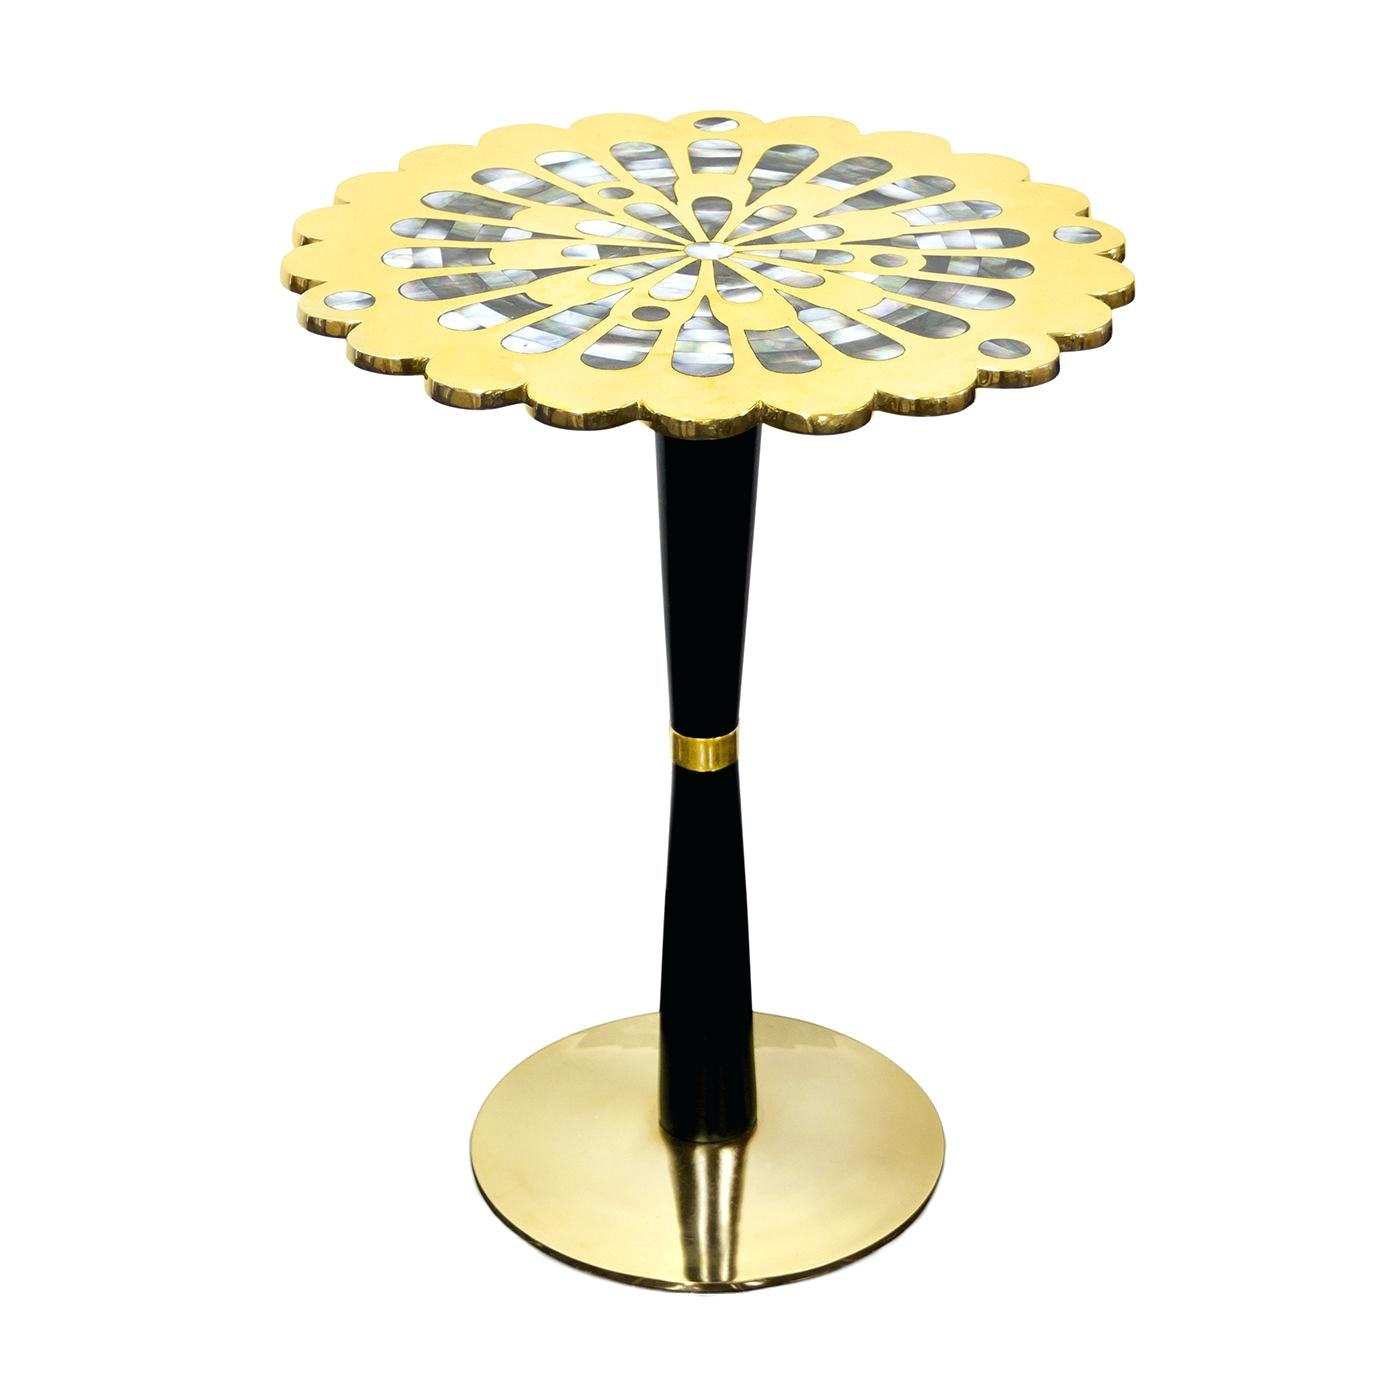 tall accent table best coupon info kismet alt high pedestal replica sofa room and board rugs buffet lamps desk trestle designs small round gold office chair coffee lamp set